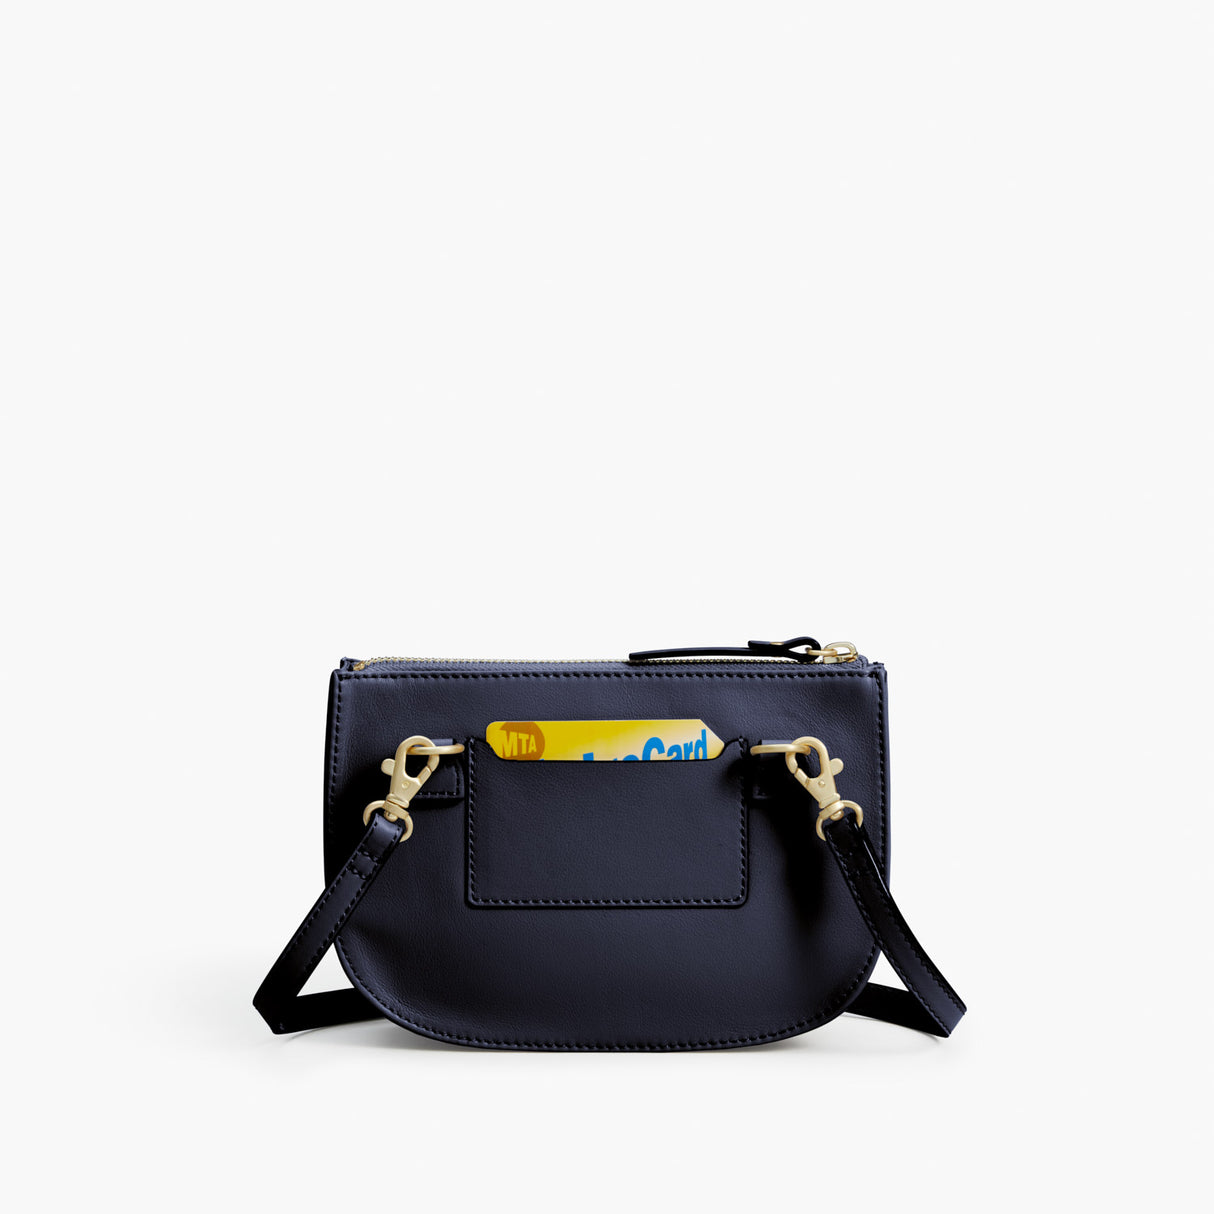 Back Card Slot - Waverley 2 - Nappa Leather - Deep Navy / Gold / Camel - Crossbody Bag - Lo & Sons